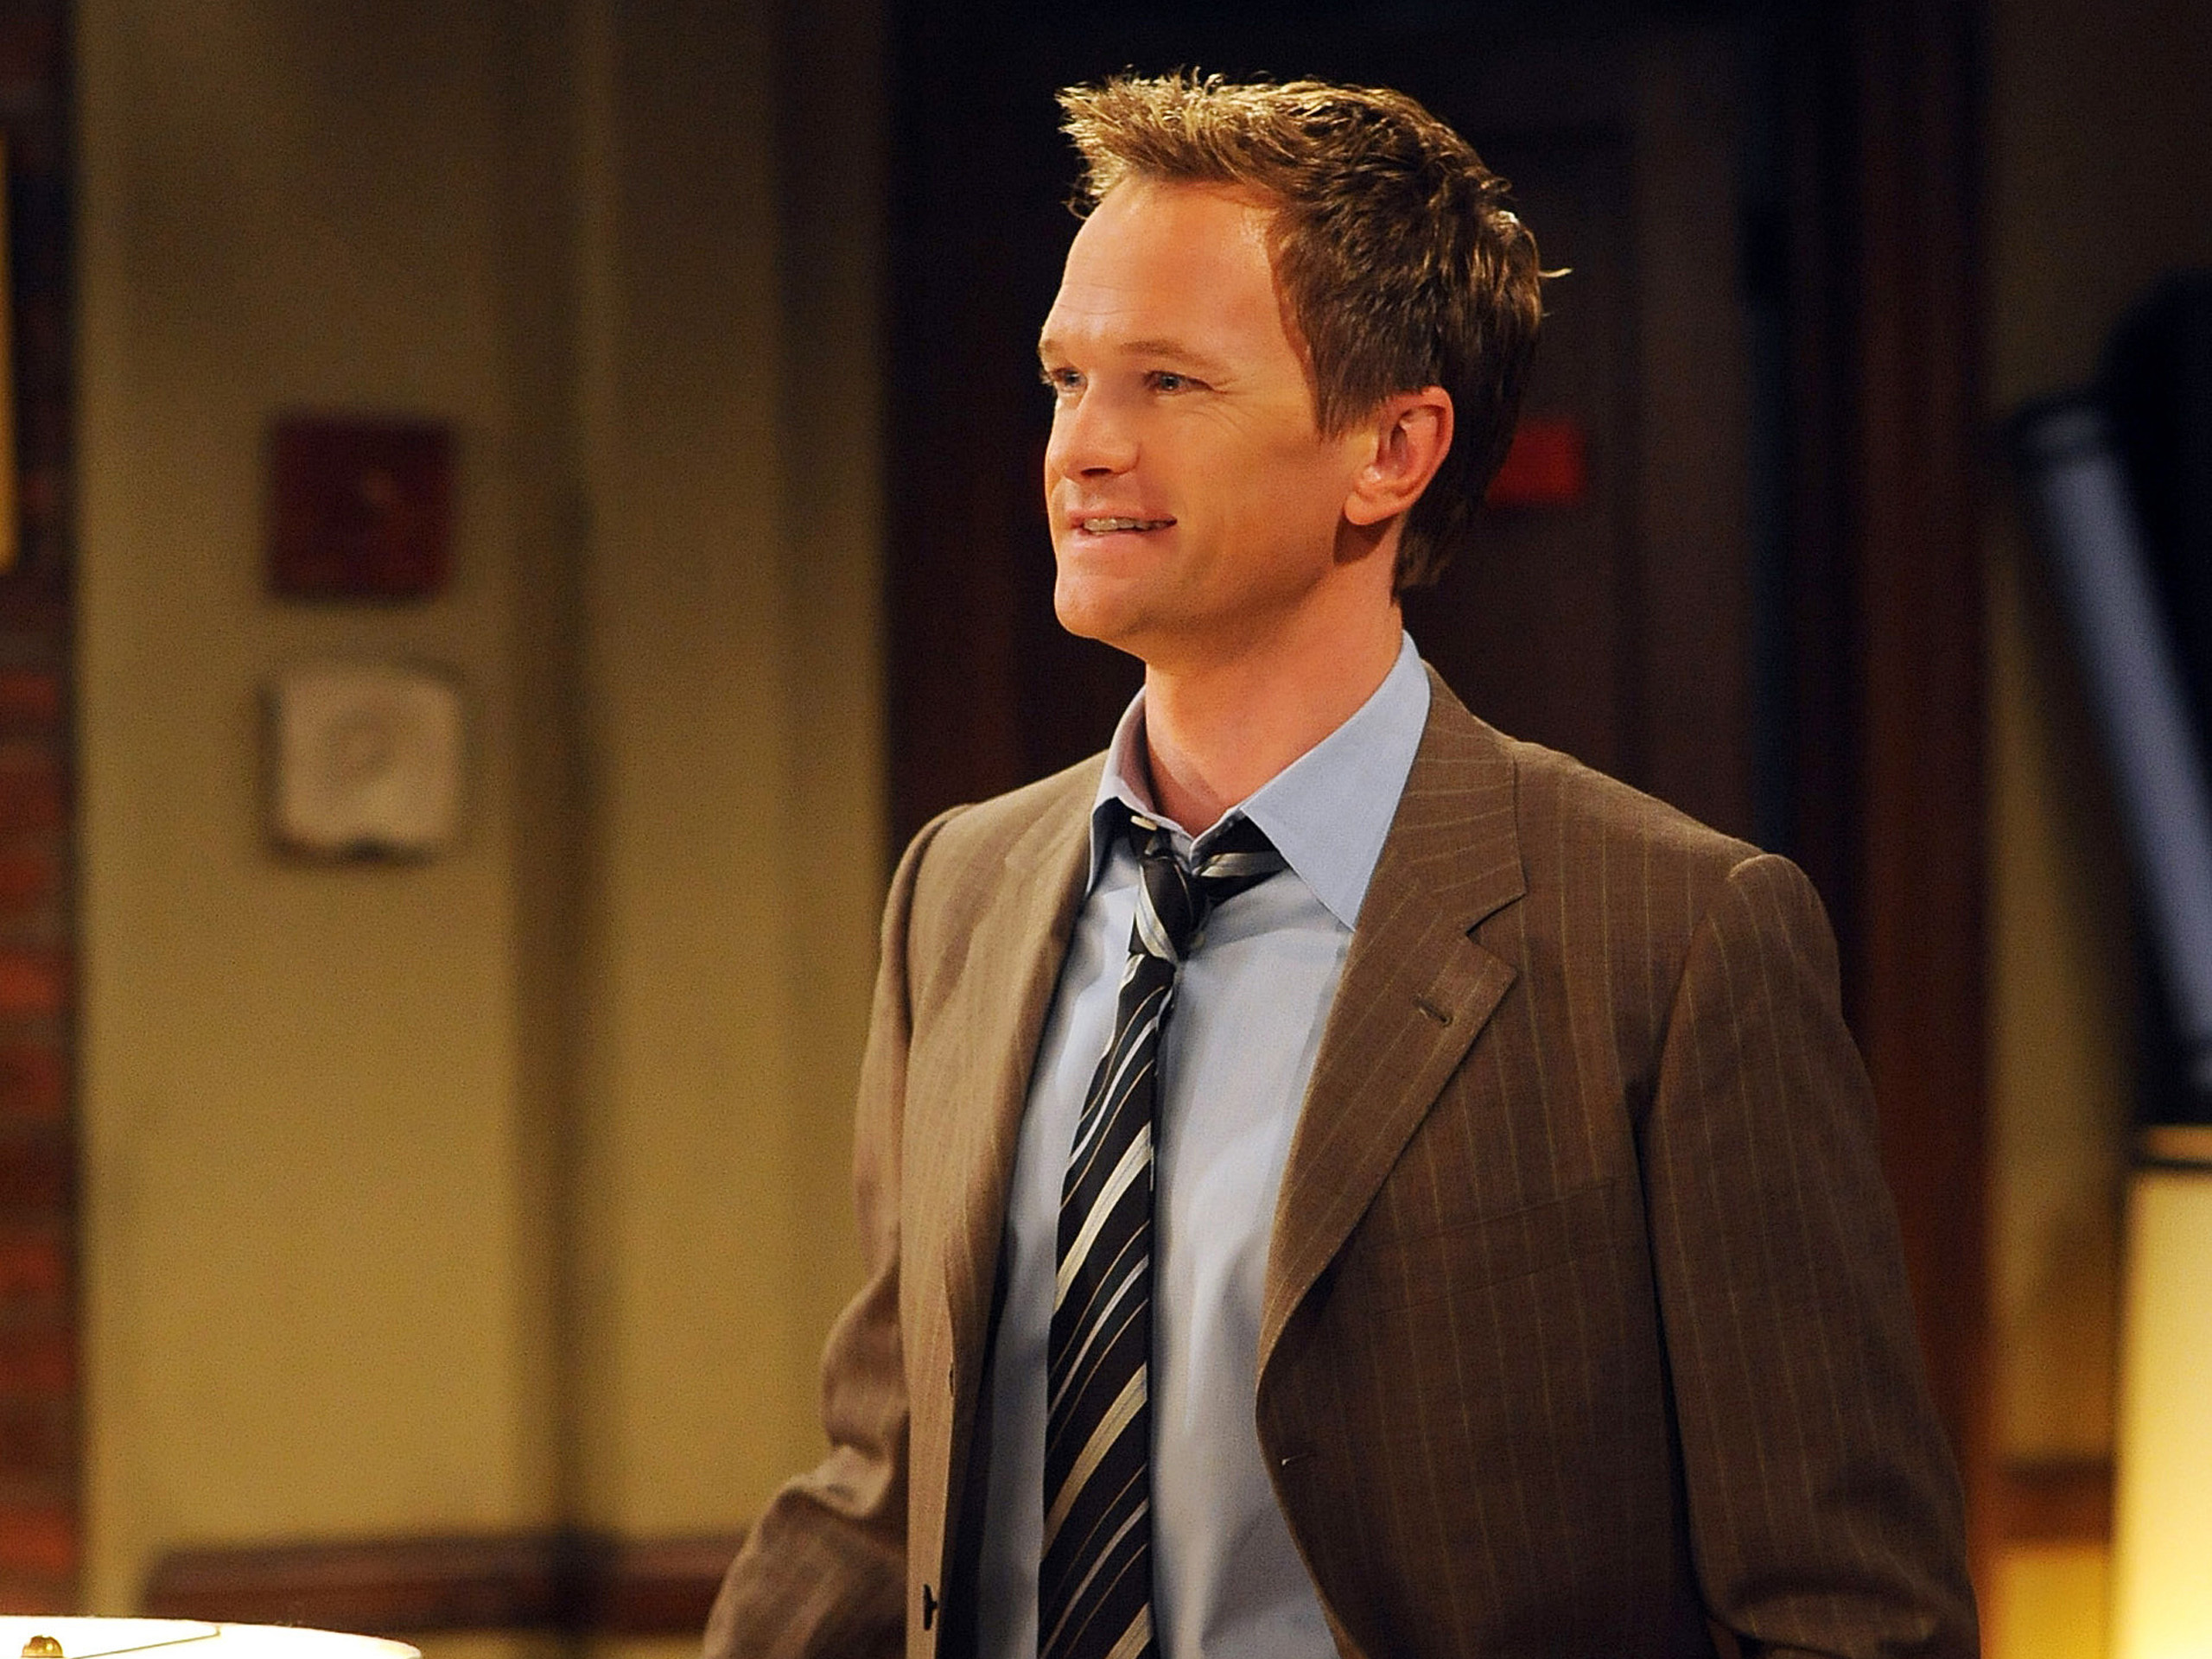 Neil Patrick Harris Images Nph Hd Wallpaper And Background Photos